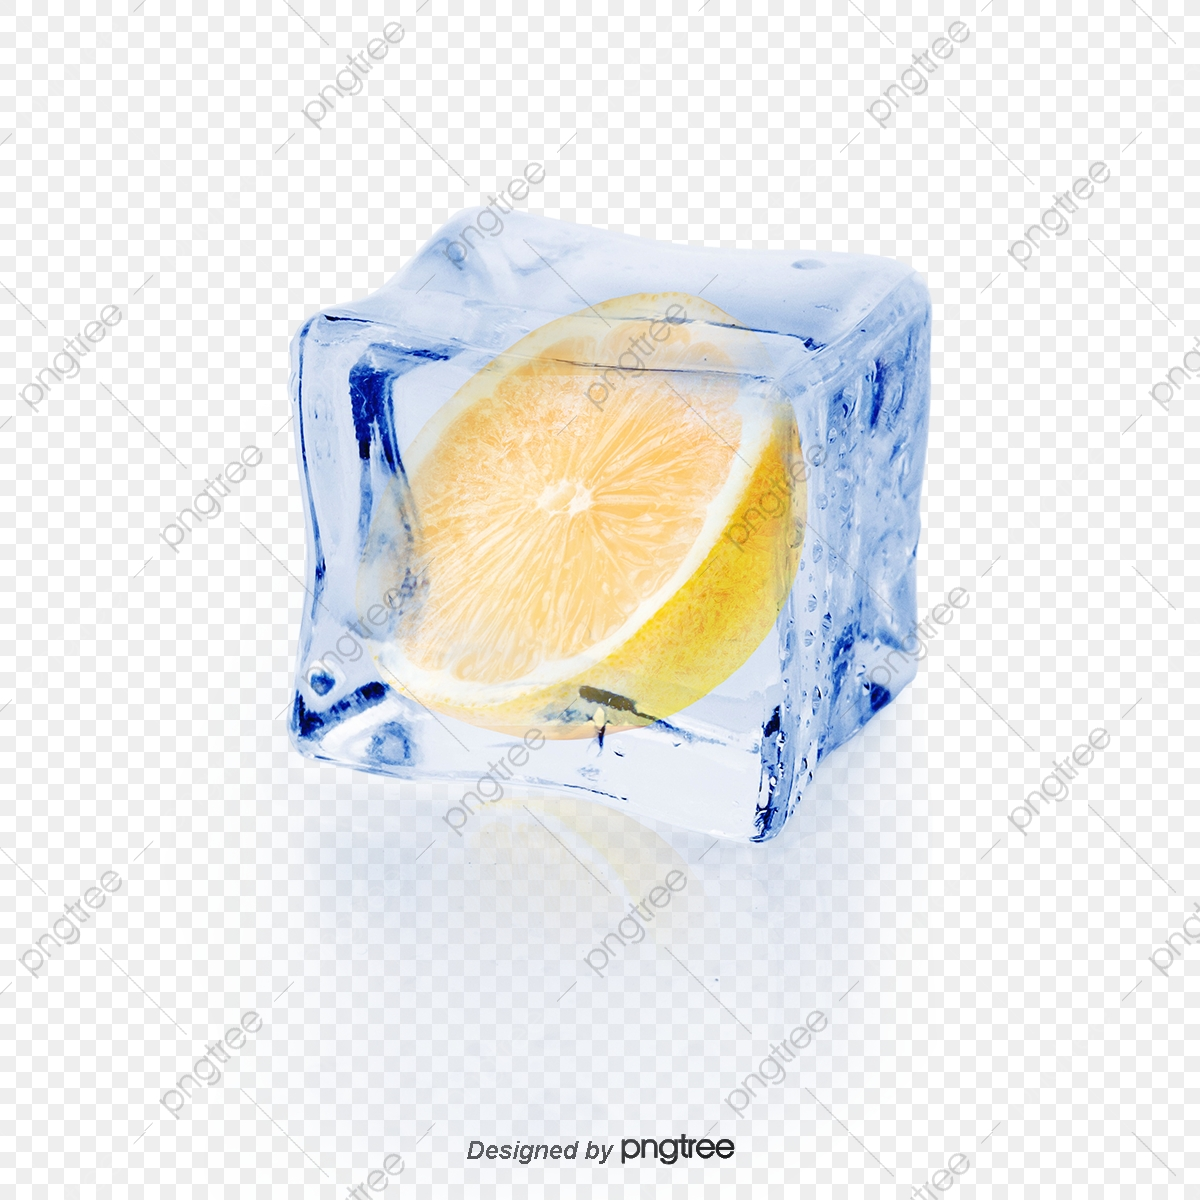 Oranges And Ice Cubes, Orange, Ice, Ice Block PNG Transparent.